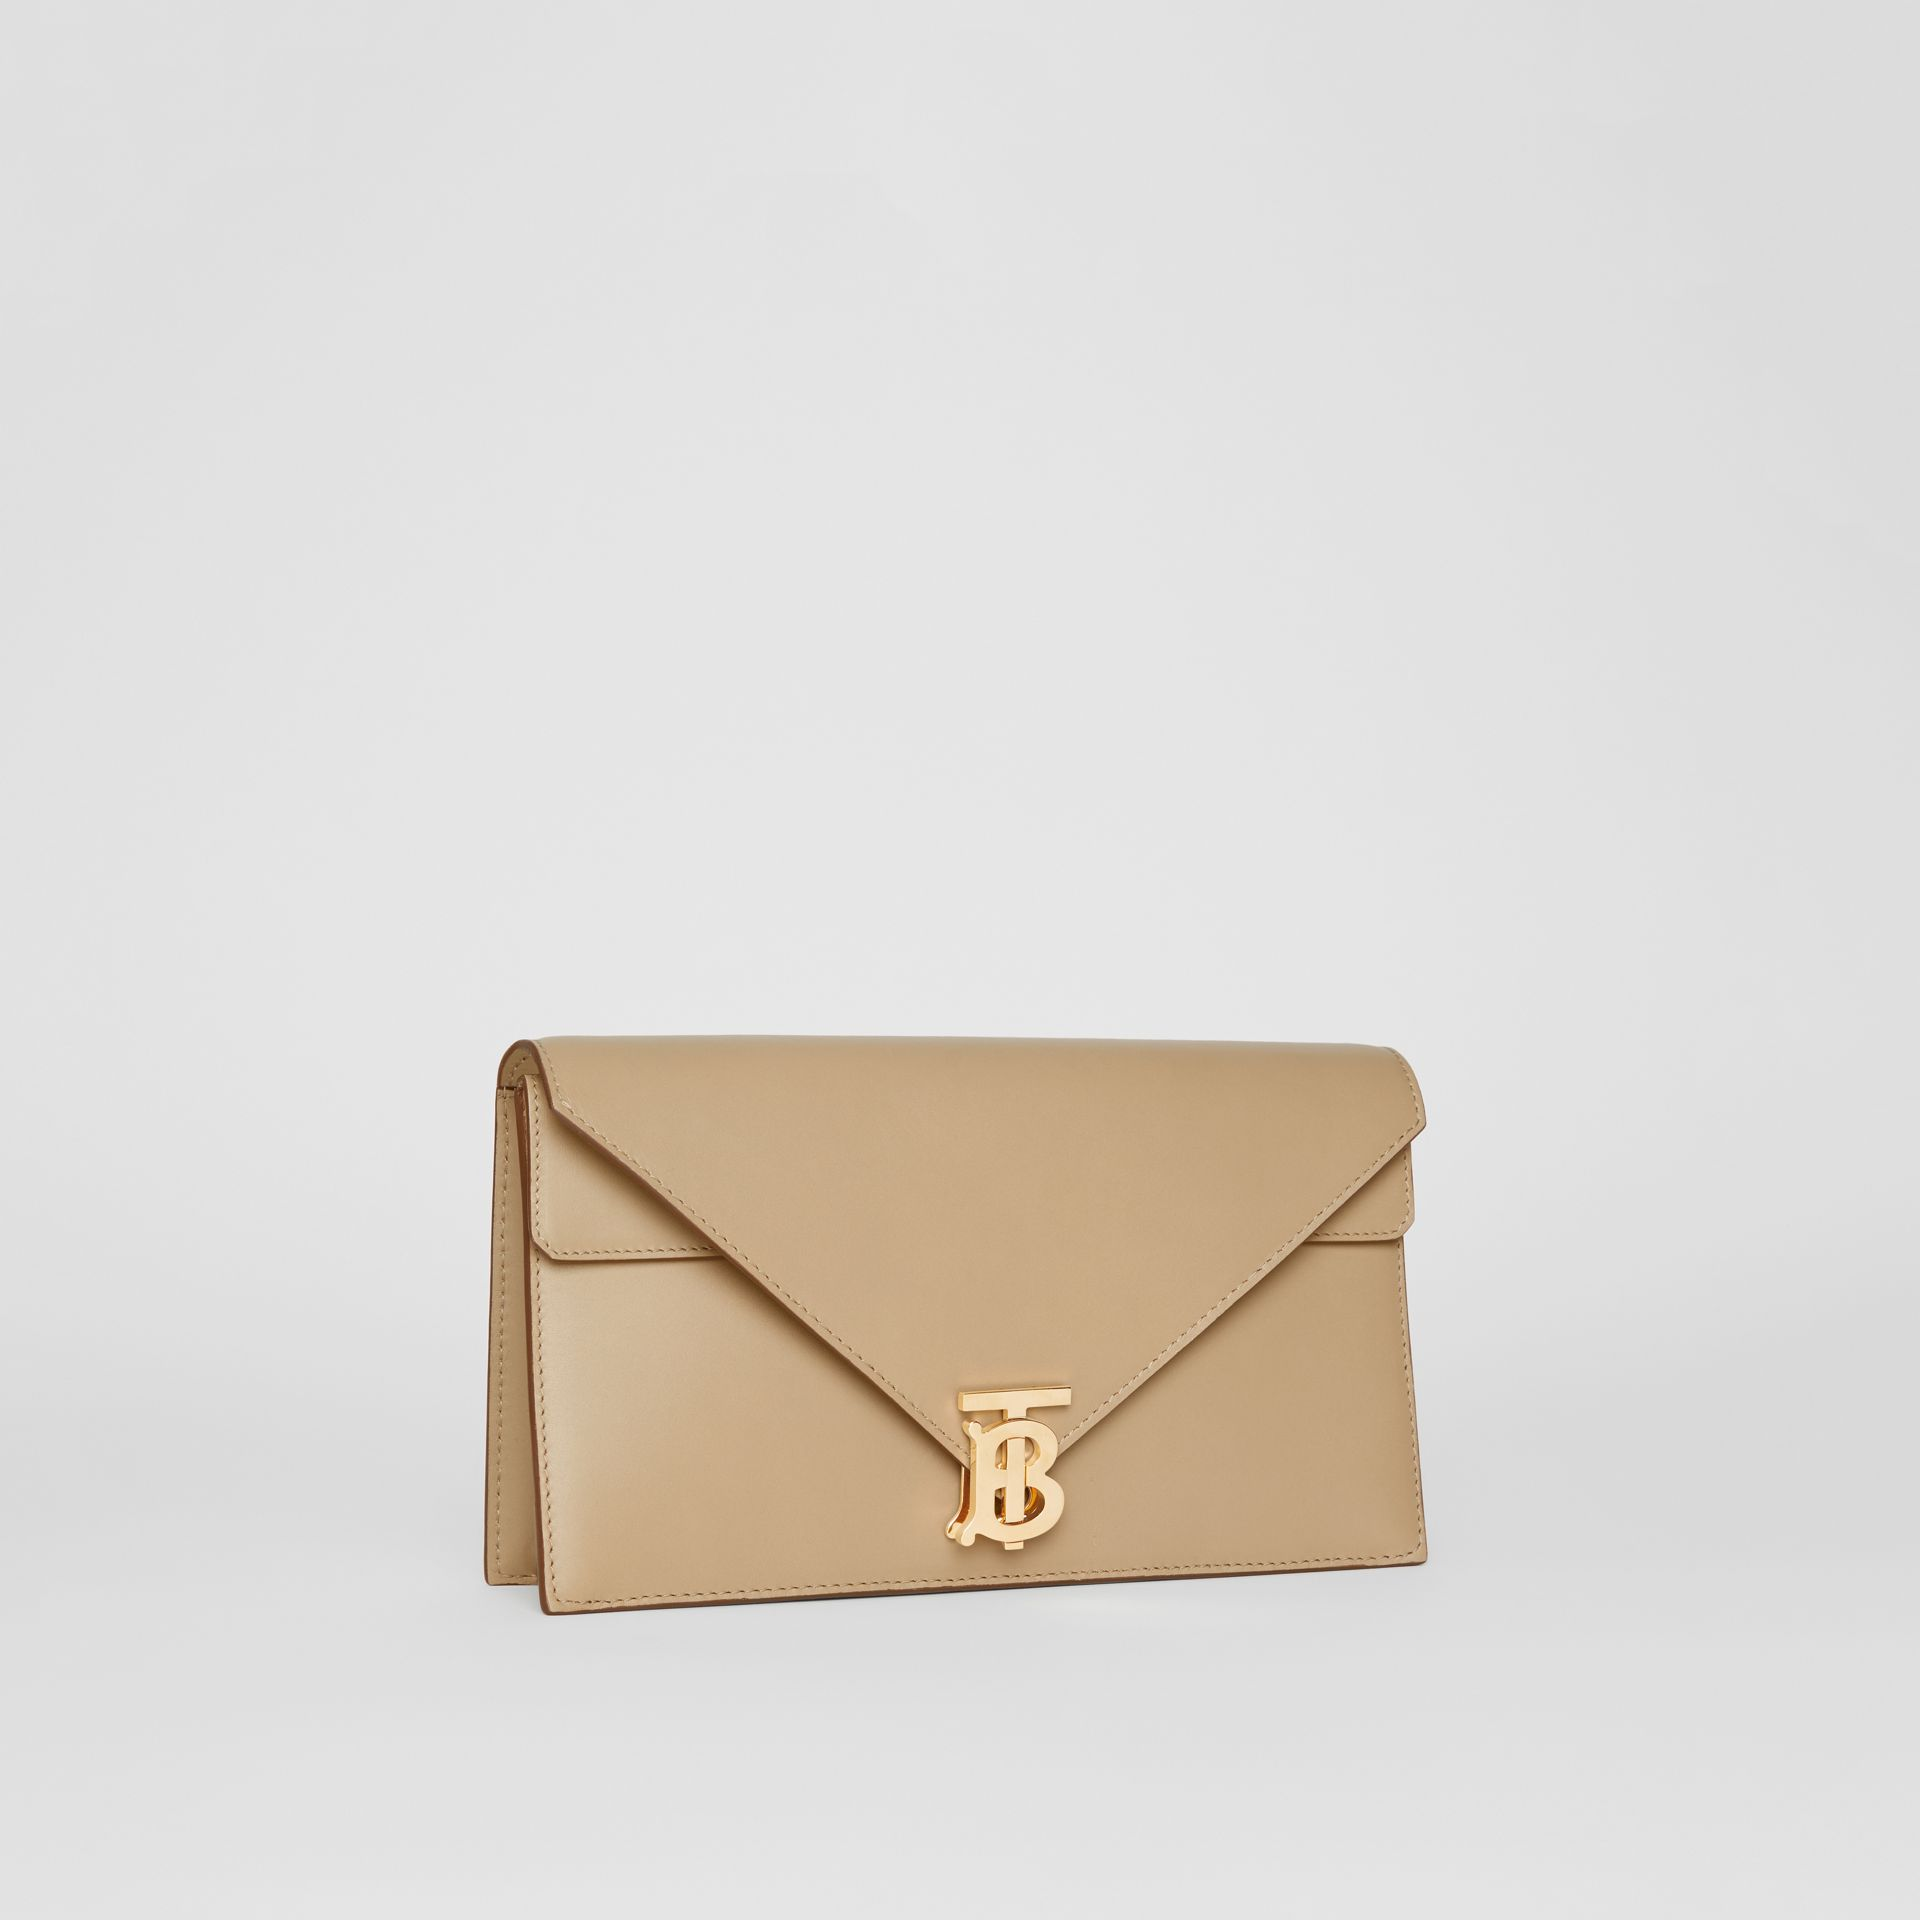 Small Leather TB Envelope Clutch in Honey - Women | Burberry United States - gallery image 7